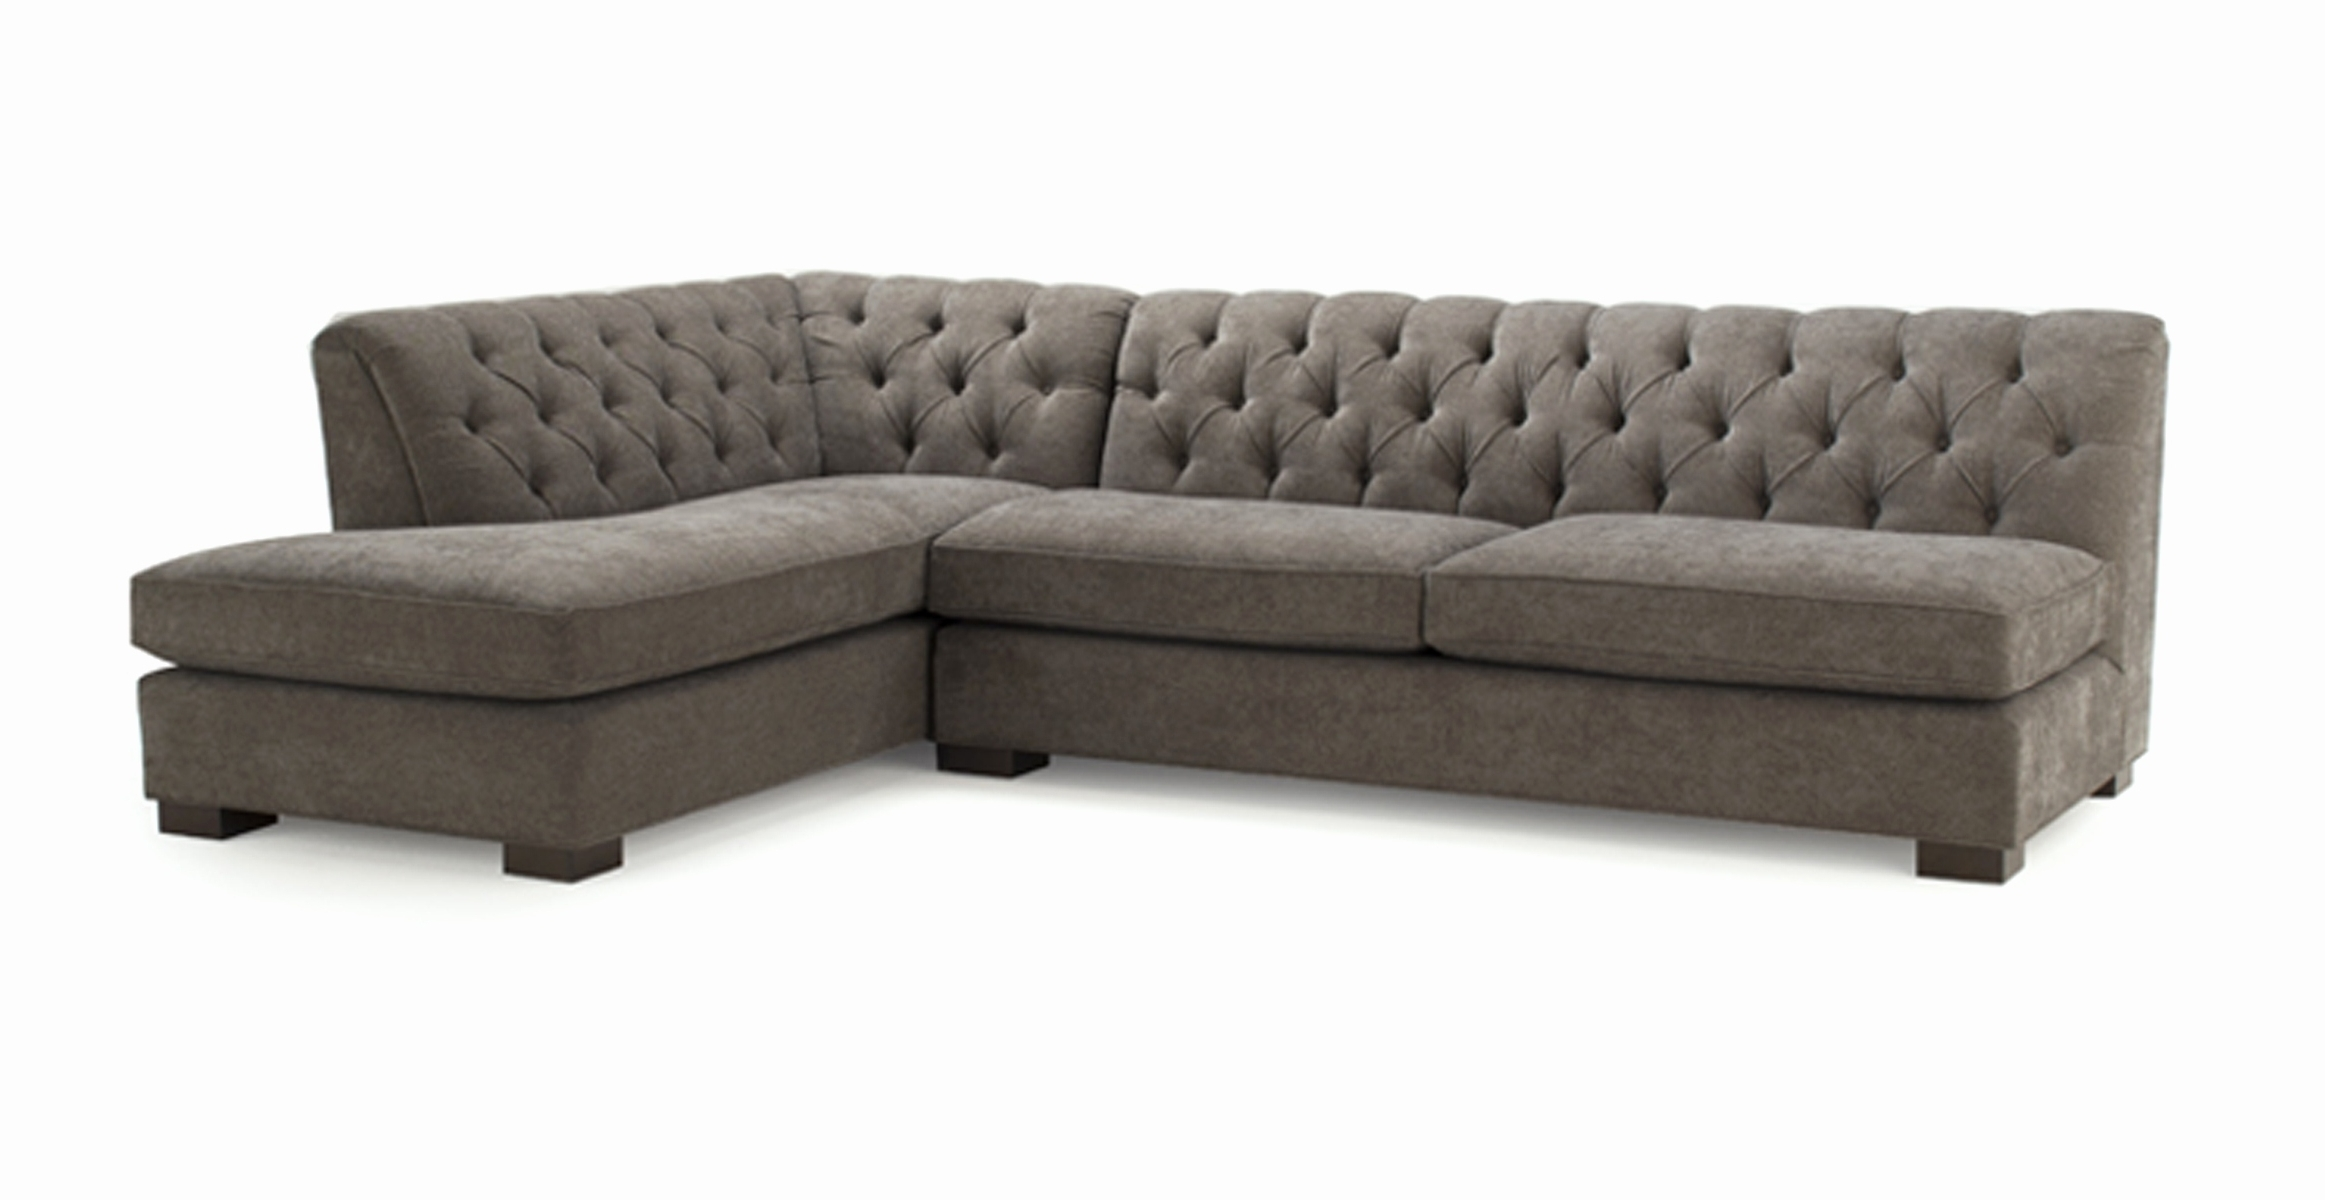 Best Mitchell Gold Sleeper Sofa Price 2018 – Couches And Sofas Ideas With Regard To Trendy Lane Furniture Sofas (View 14 of 15)